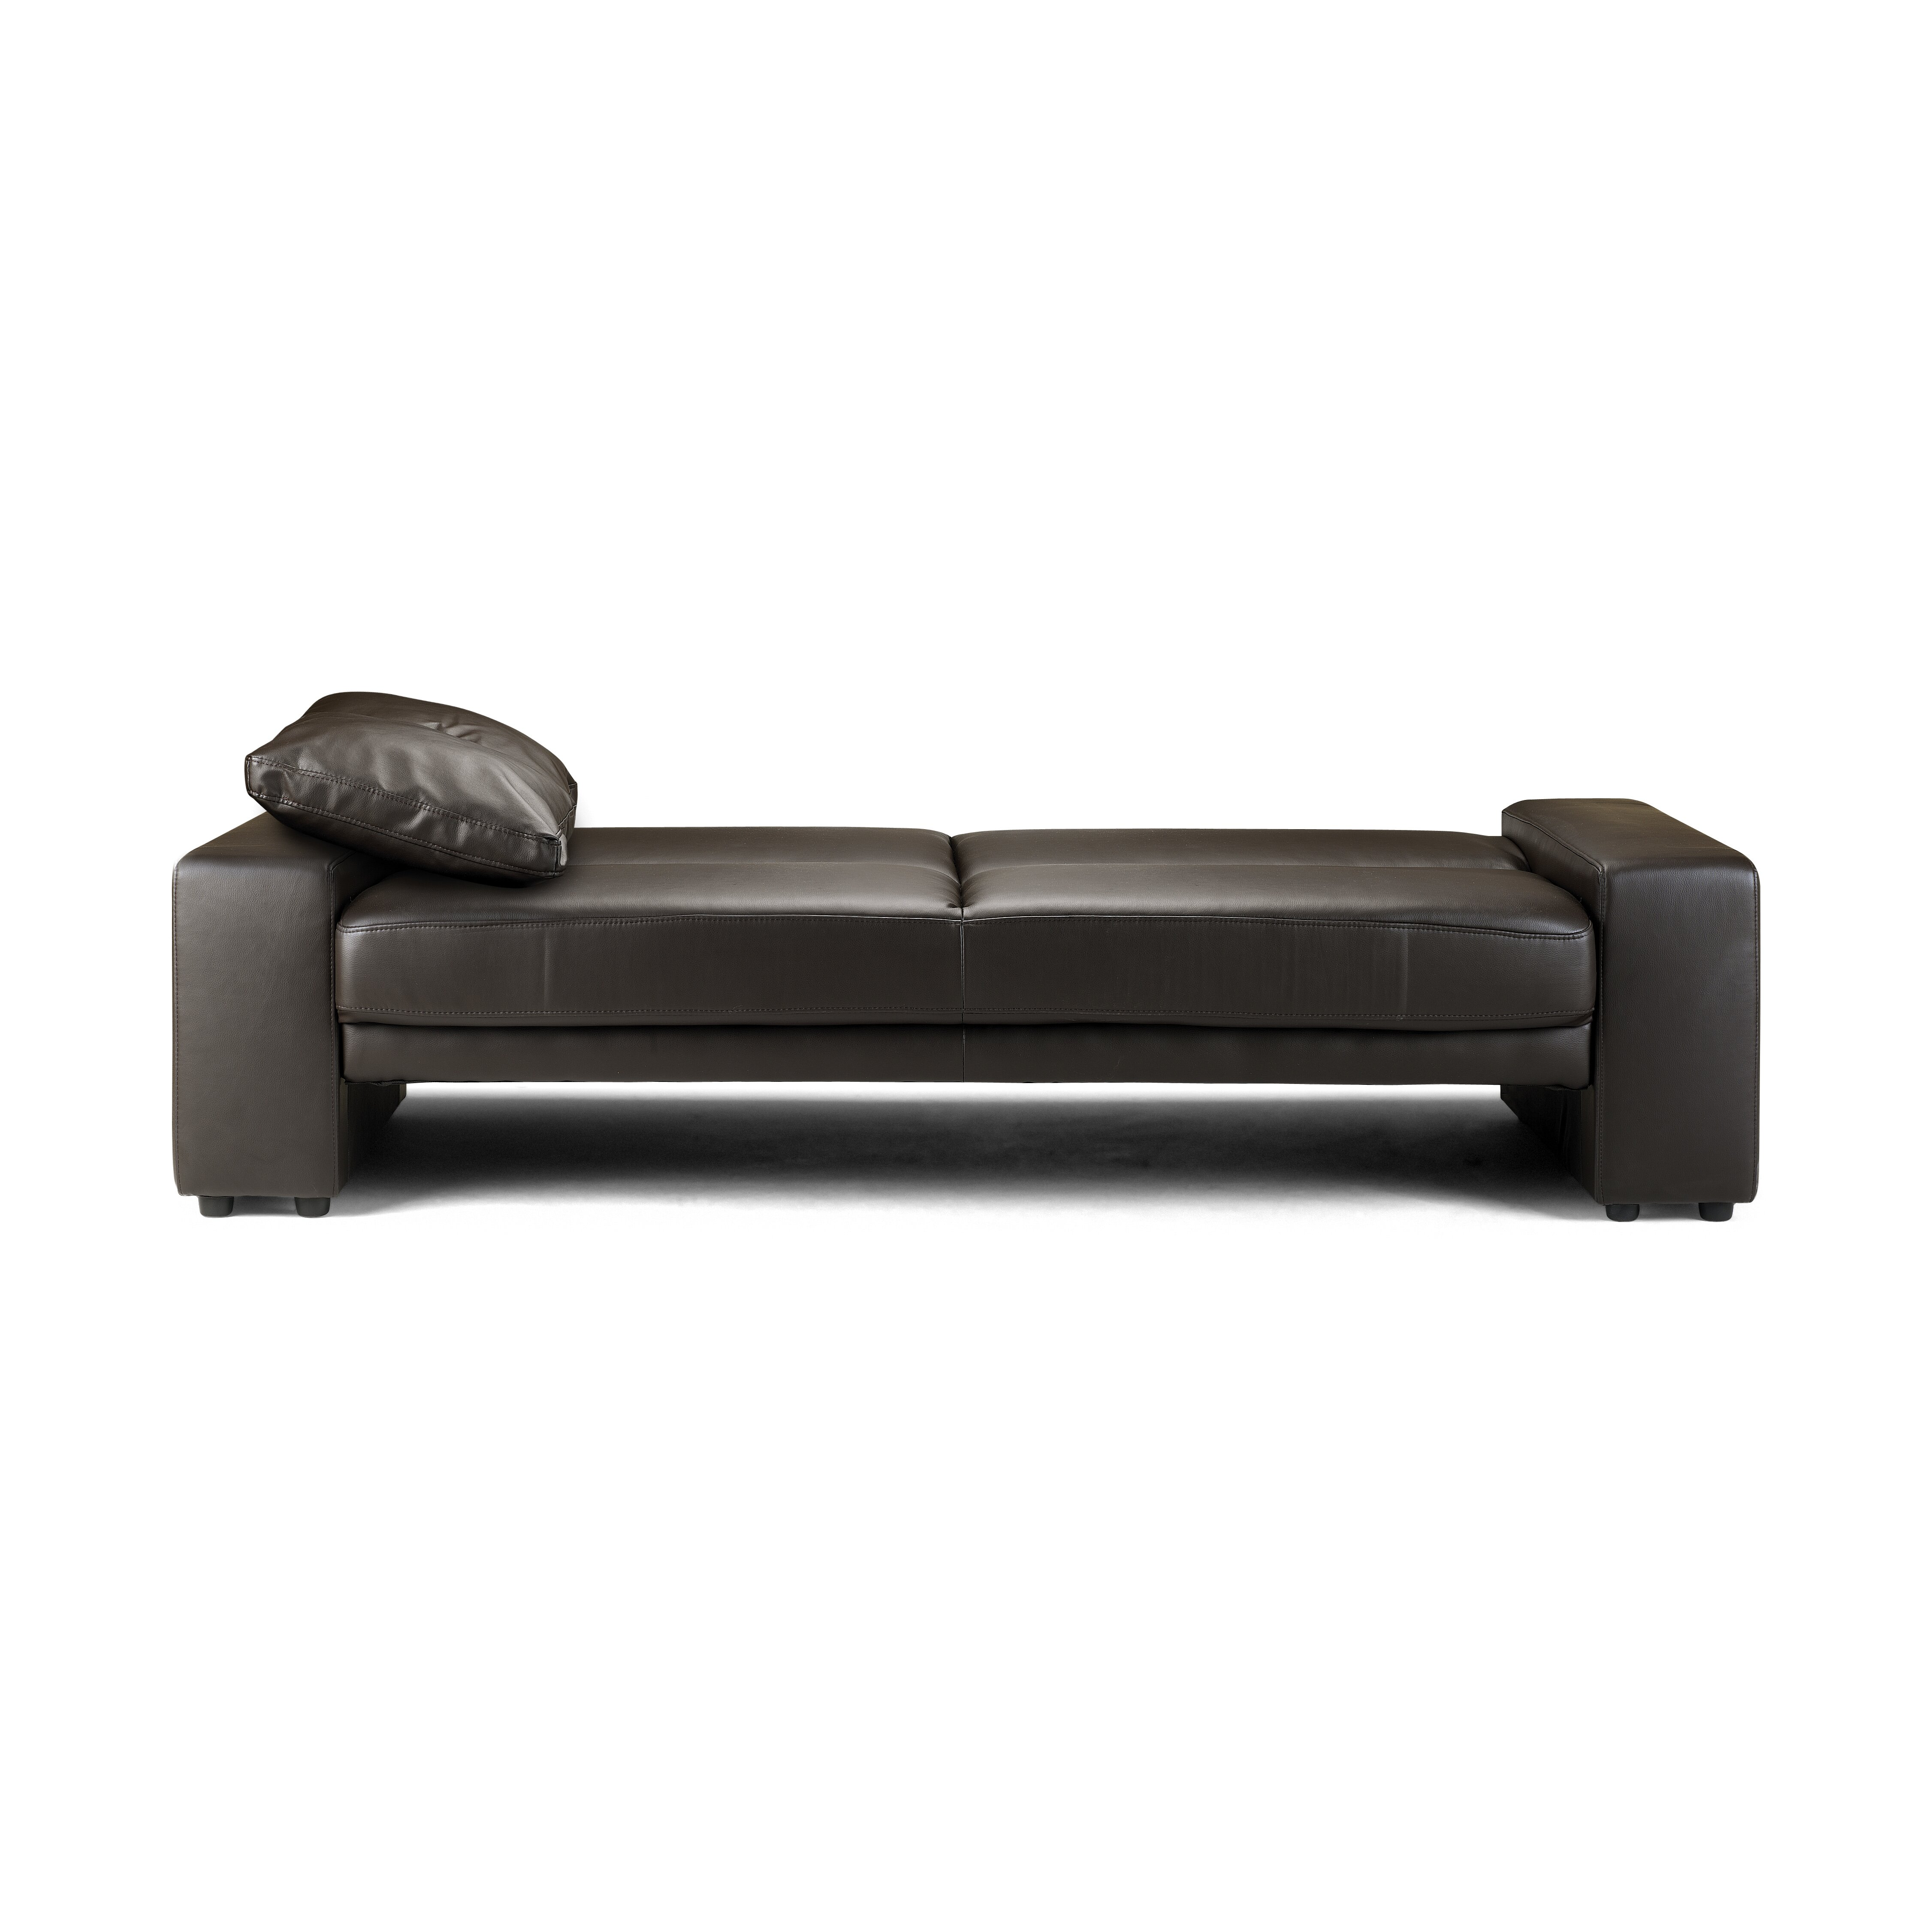 all home gibson 3 seater clic clac sofa bed reviews. Black Bedroom Furniture Sets. Home Design Ideas